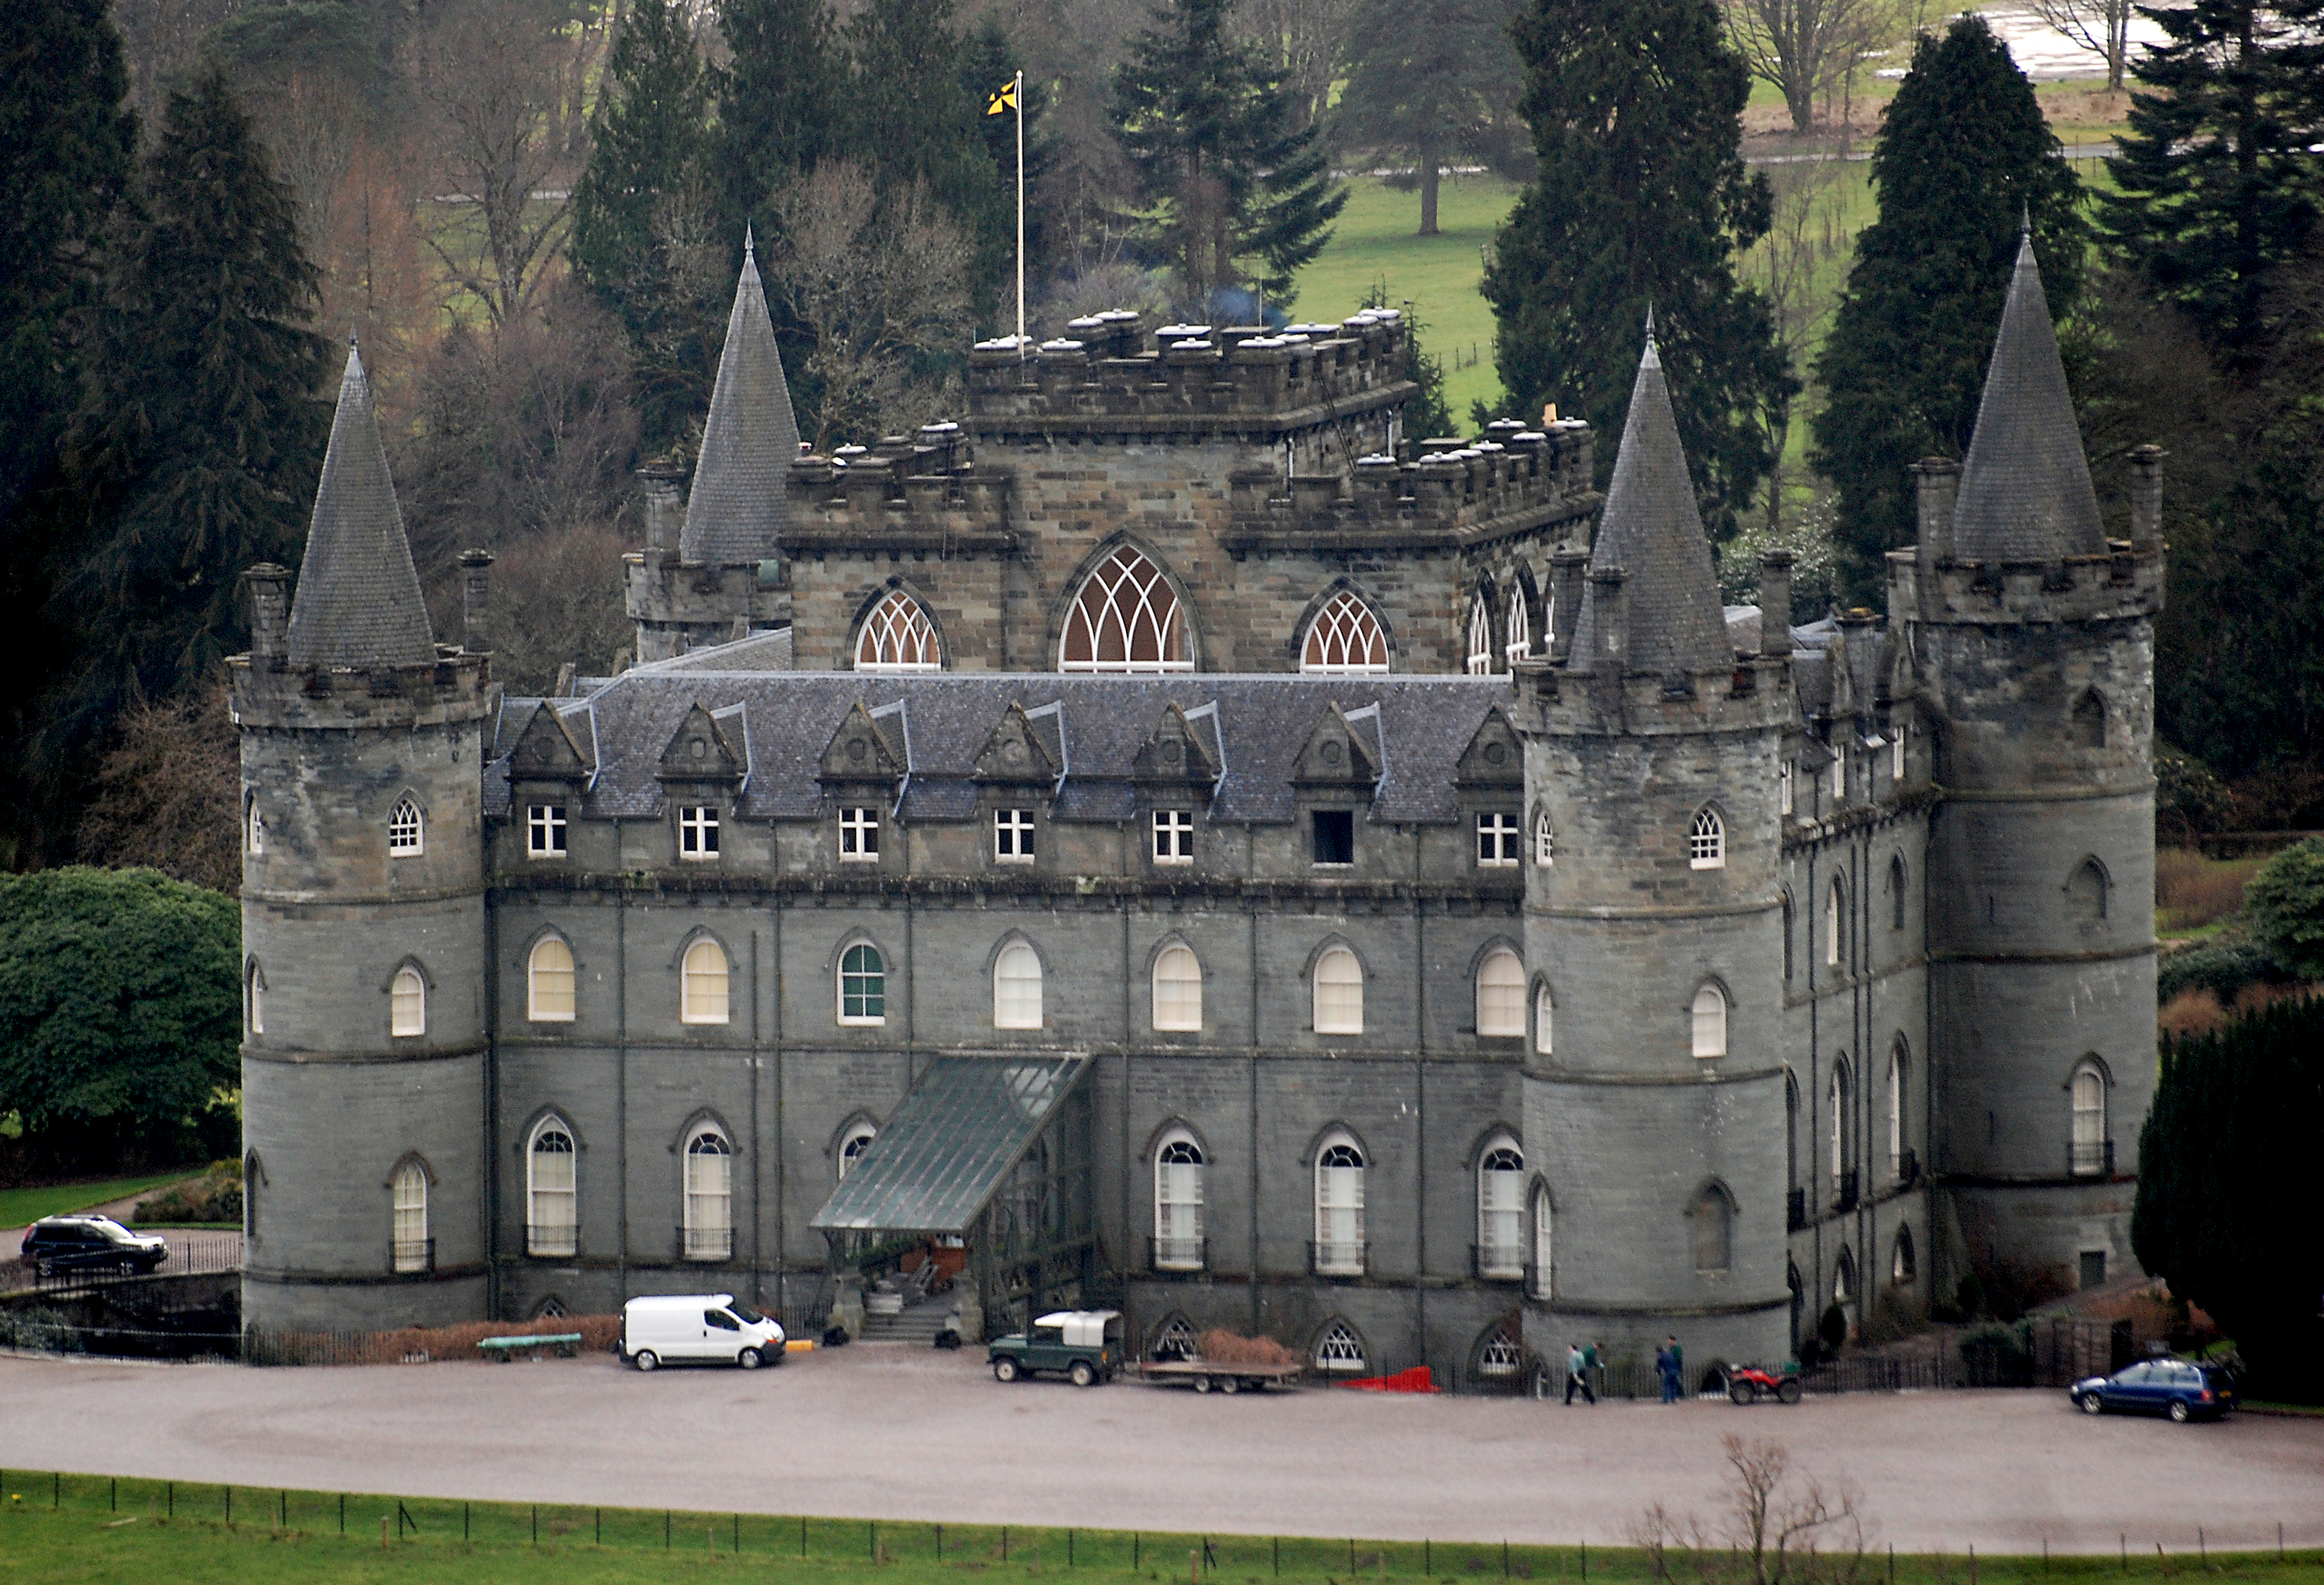 castle douglas dating Meet tons of available women in castle douglas on mingle2com — the best online dating site for castle douglas singles sign up now for immediate access to our castle douglas personal ads and find hundreds of attractive single women looking for love, sex, and fun in castle douglas.